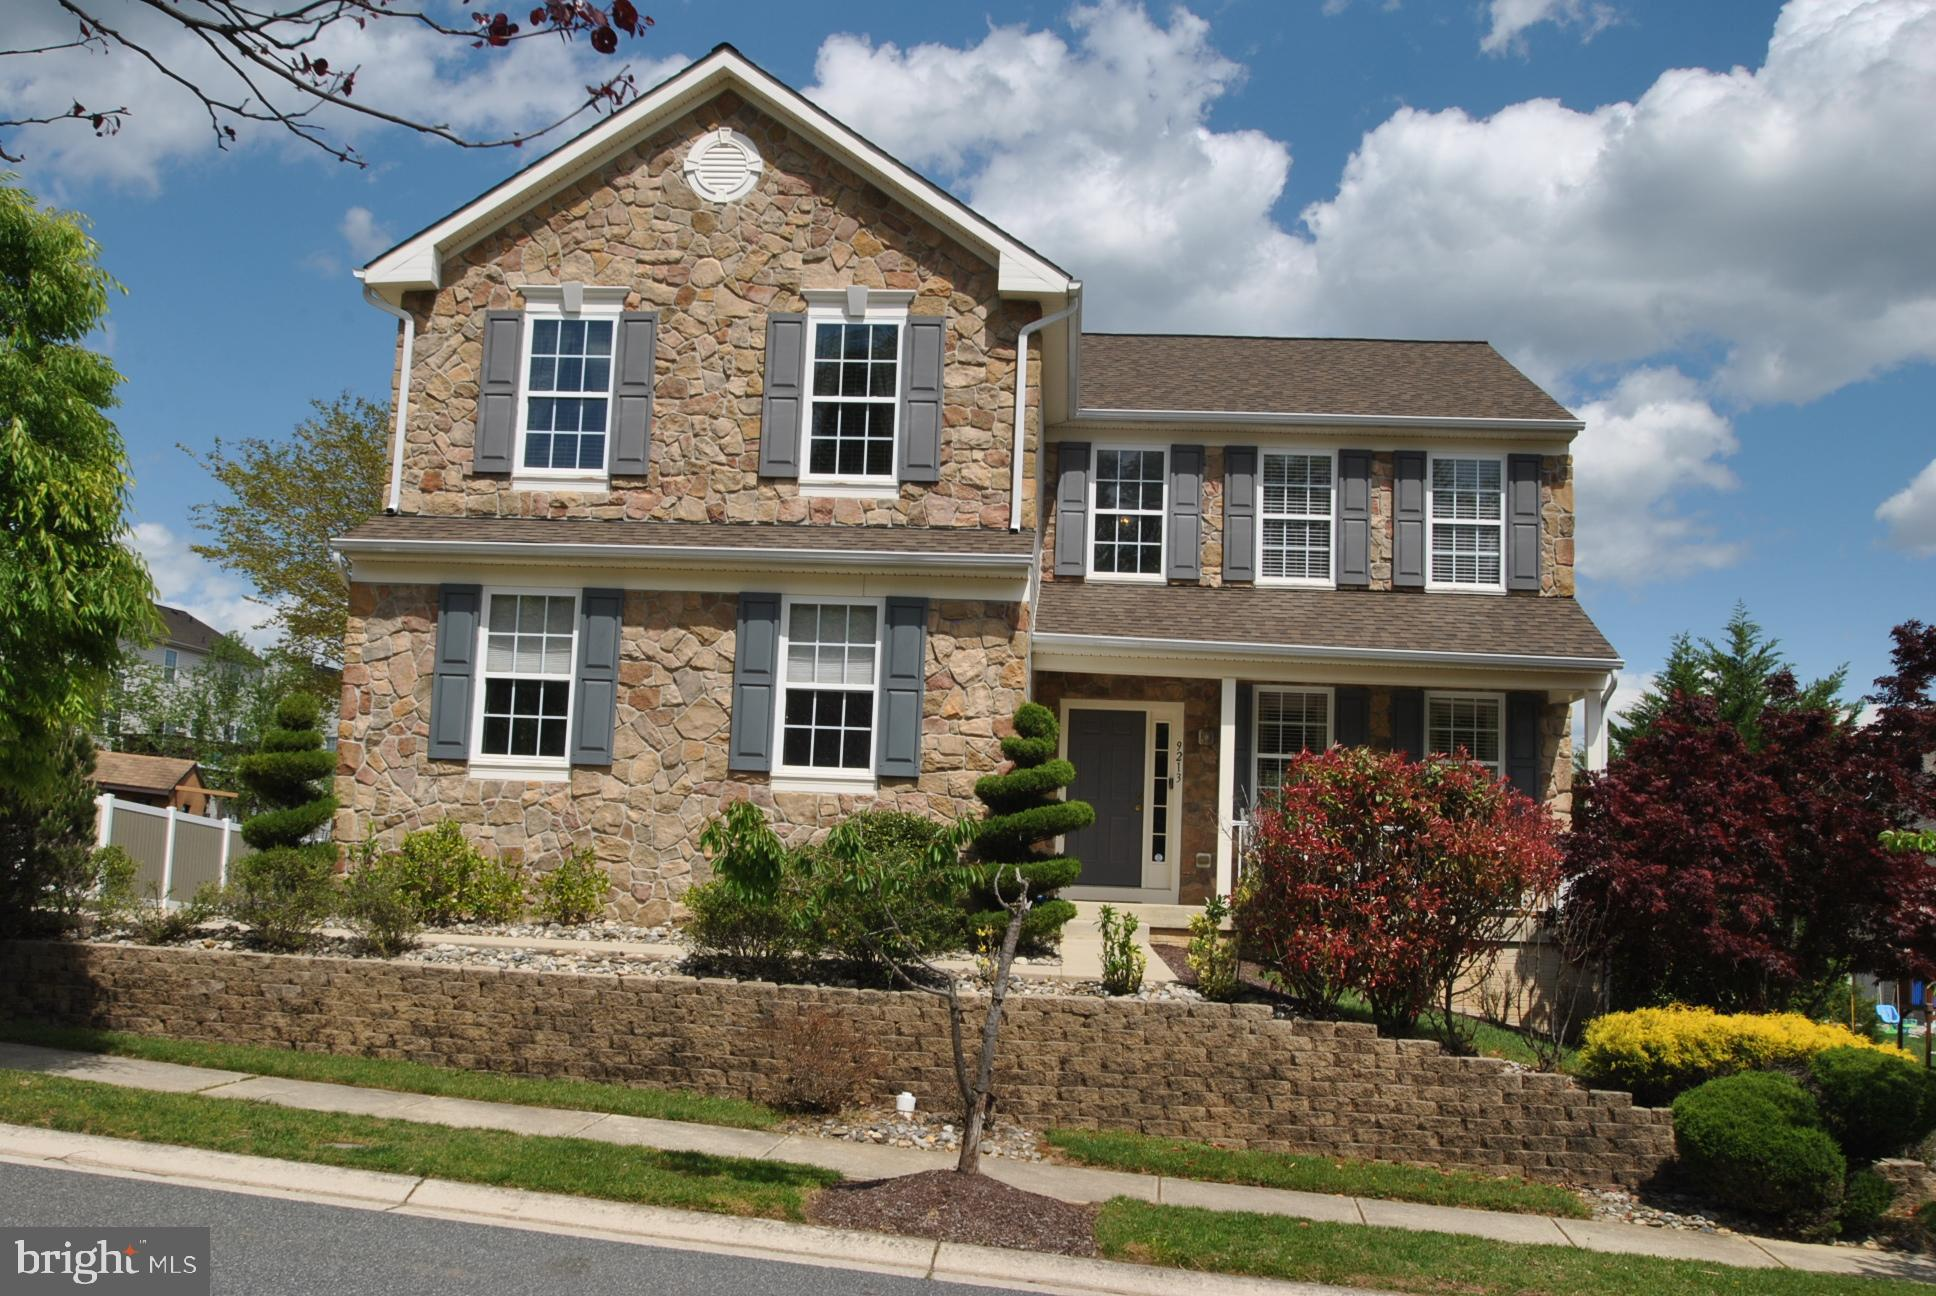 STUNNING STONE FRONT COLONIAL IN MOORES ORCHARD COMMUNITY! FEATURES: 5 BEDROOMS 3.5 BATHS, OPEN TWO